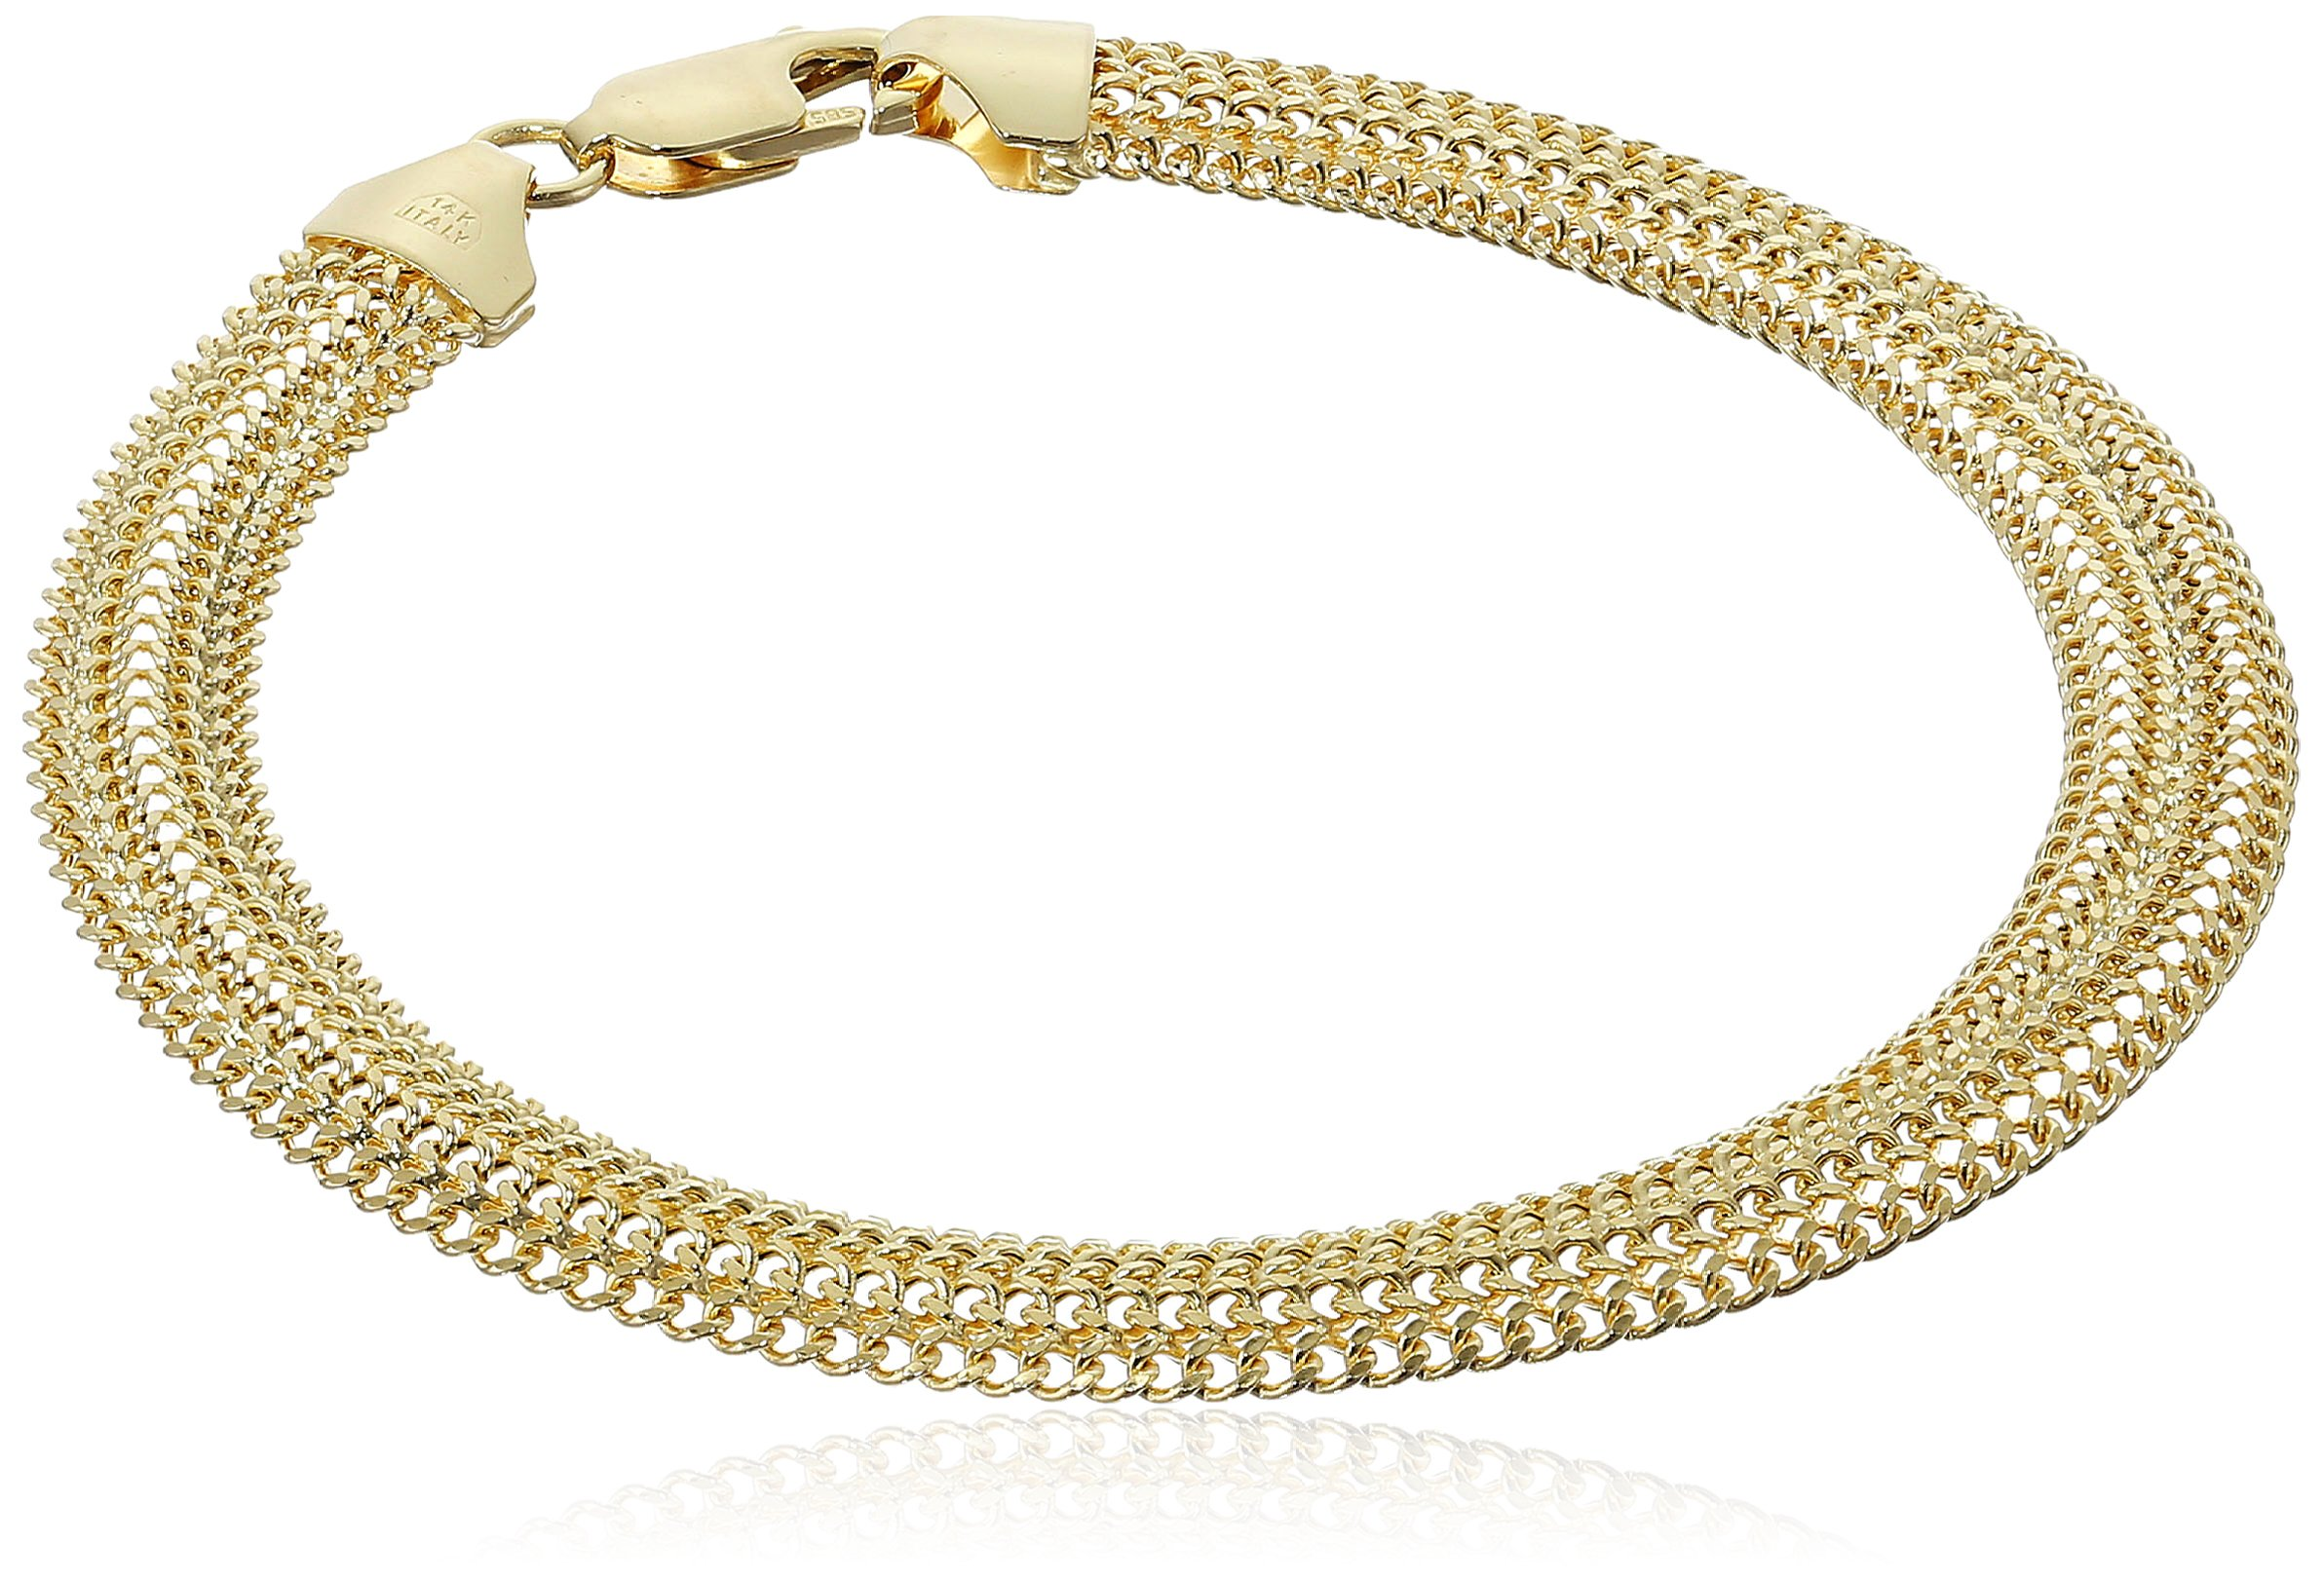 14k Yellow Gold Domed Curb Link Bracelet, 7.5''